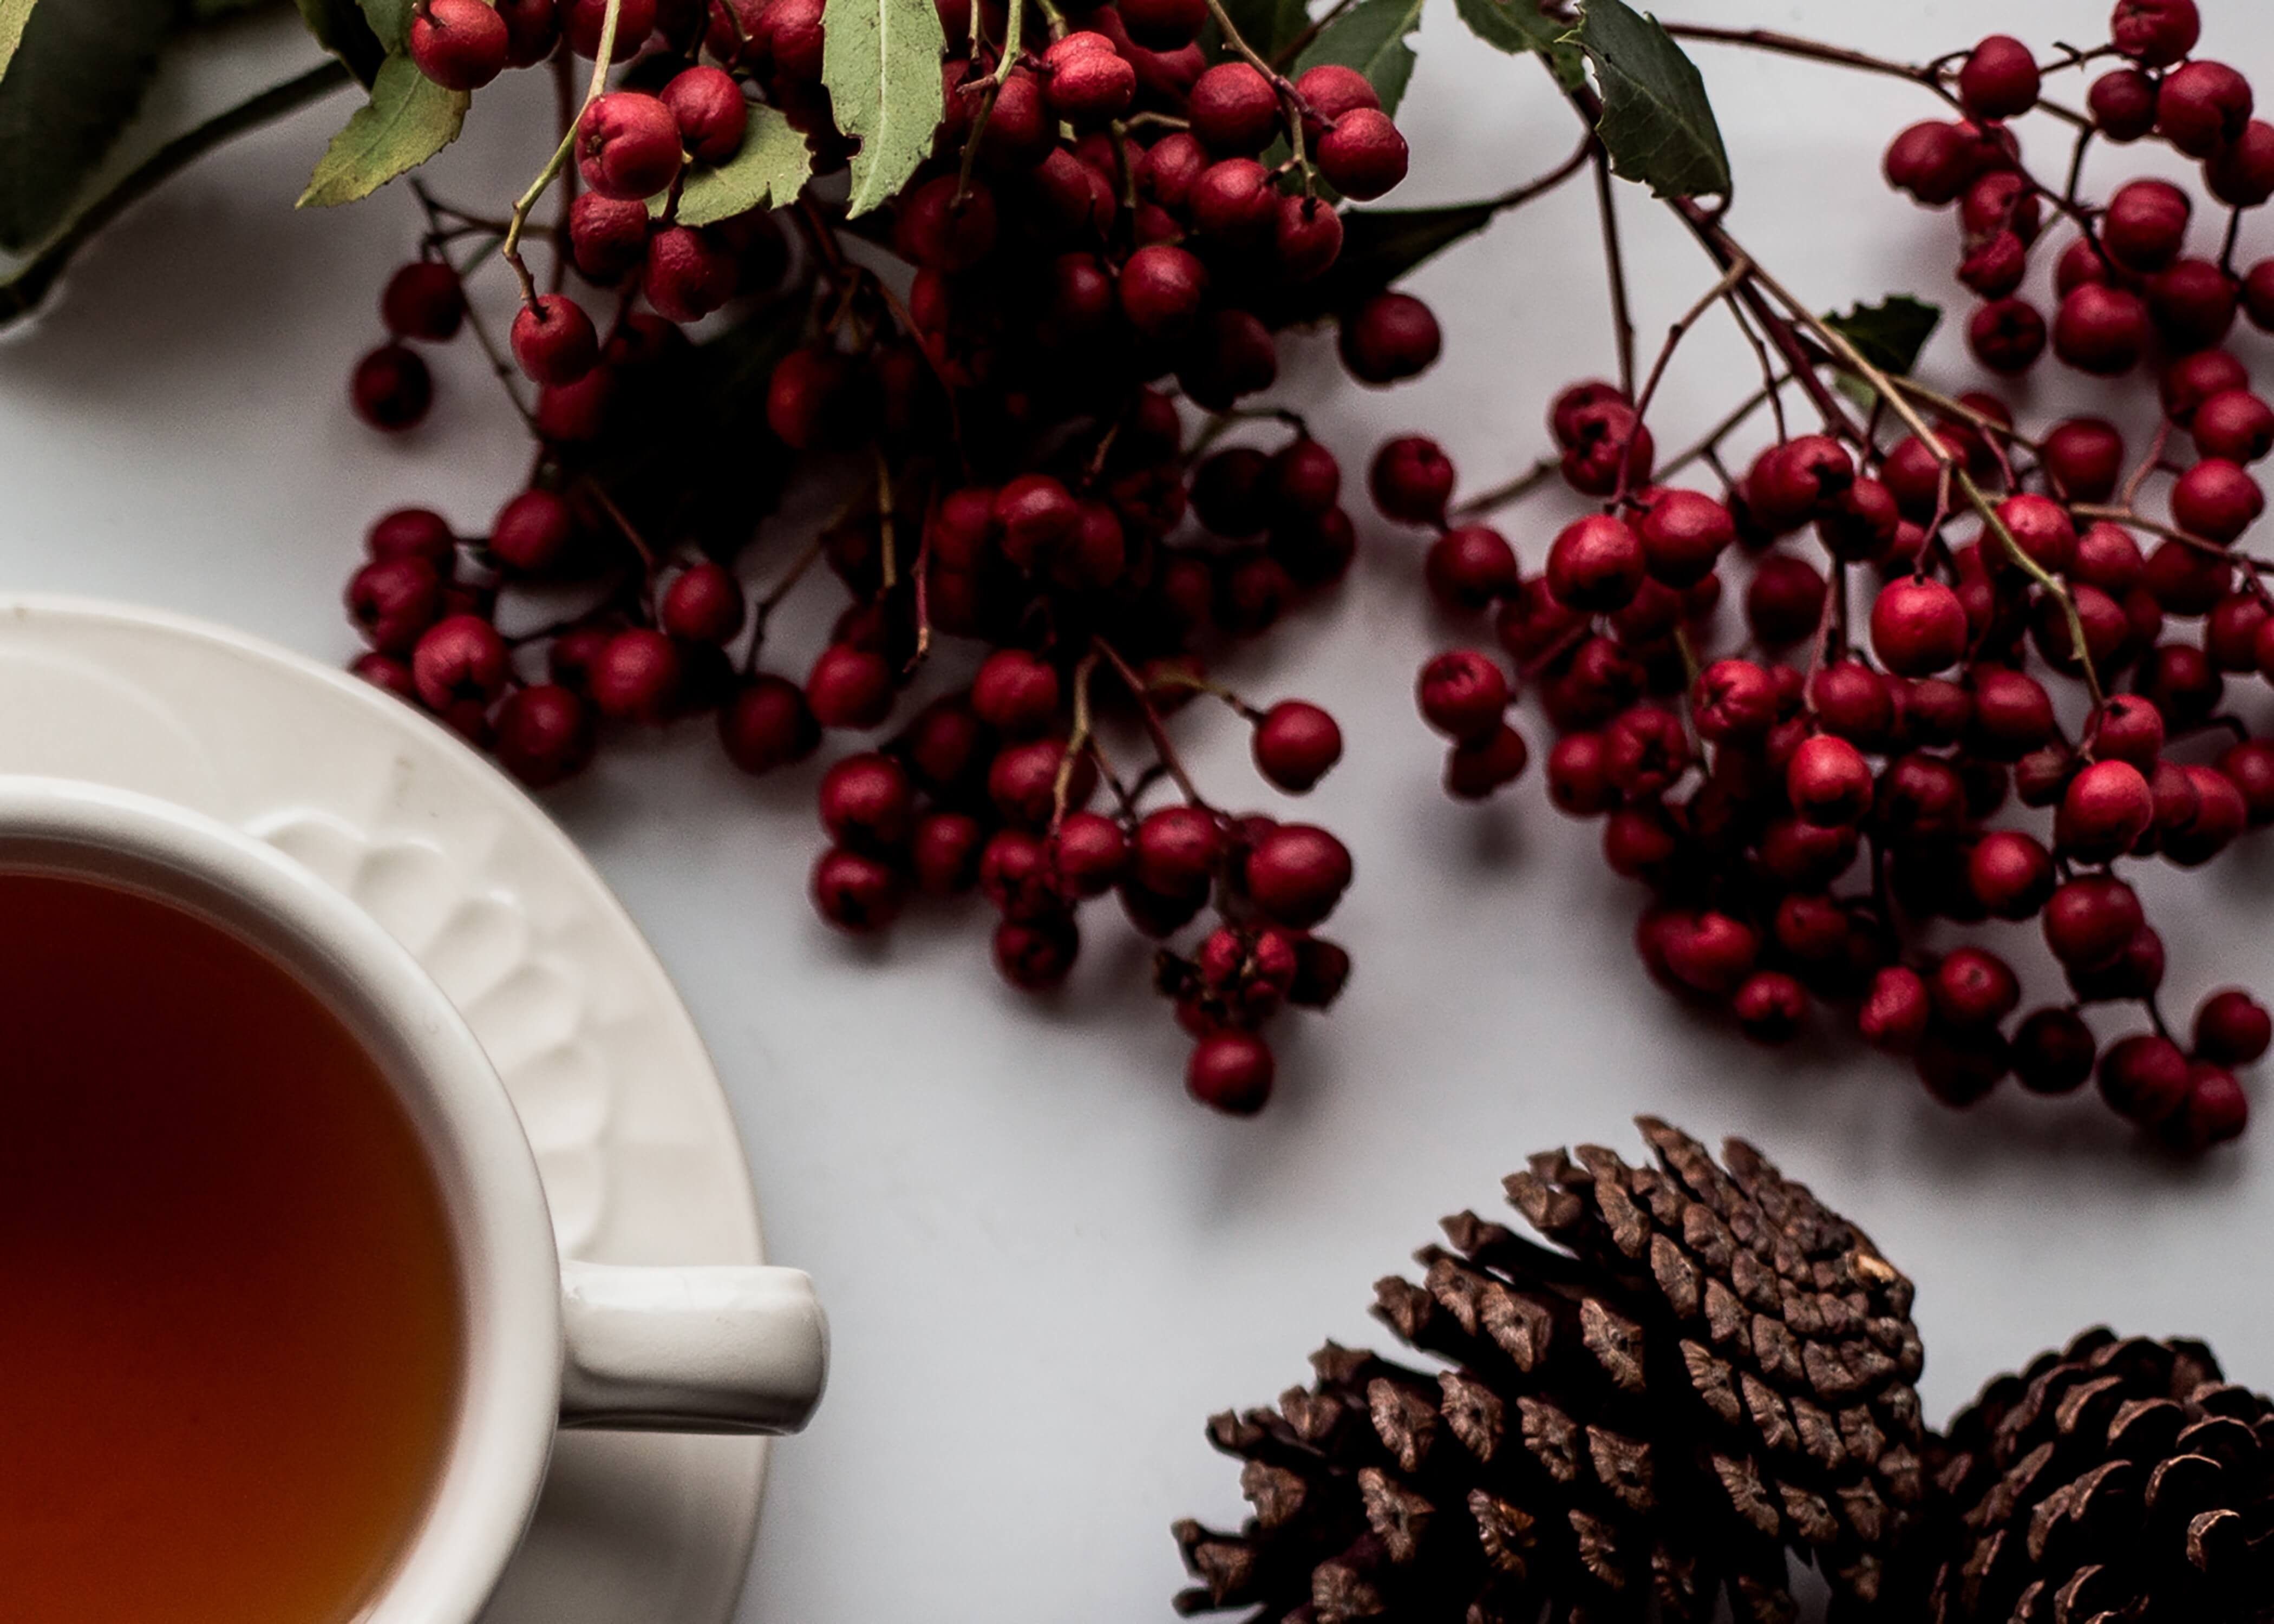 Flat lay of a mug of tea, cranberries, and pinecones for the holidays